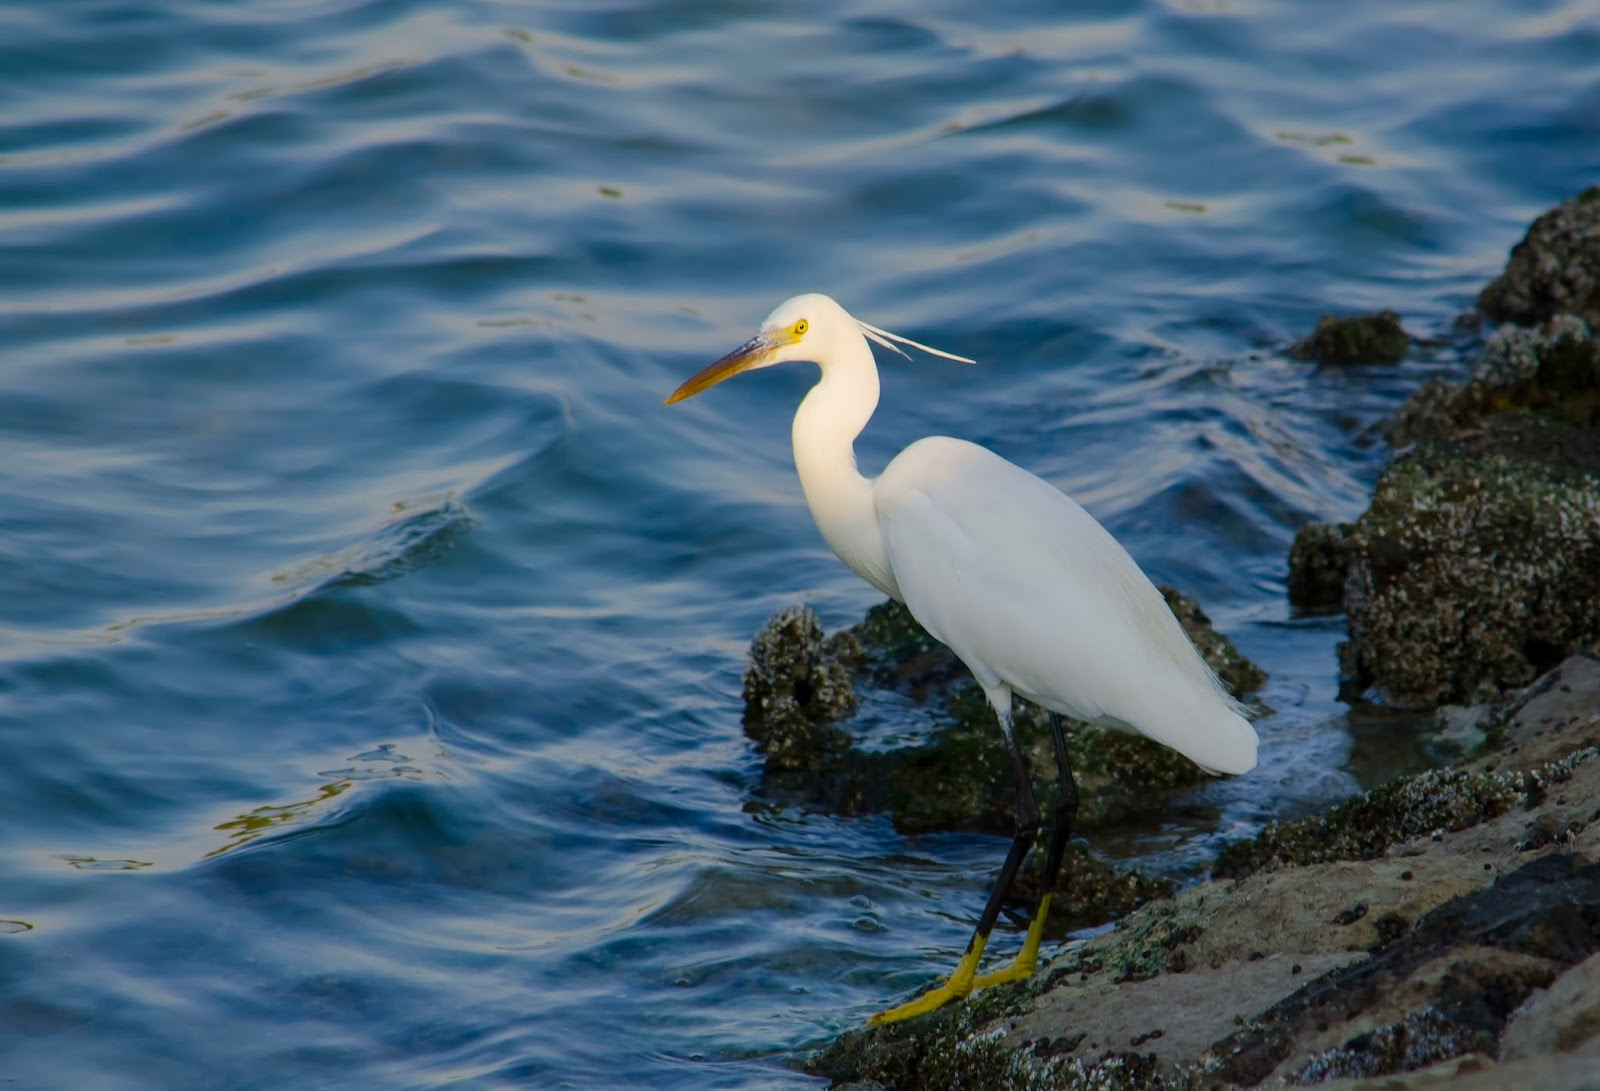 Beautiful Birds at the shores of Abu Dhabi Mangroves near the public park - Photo by Adham Al Oka